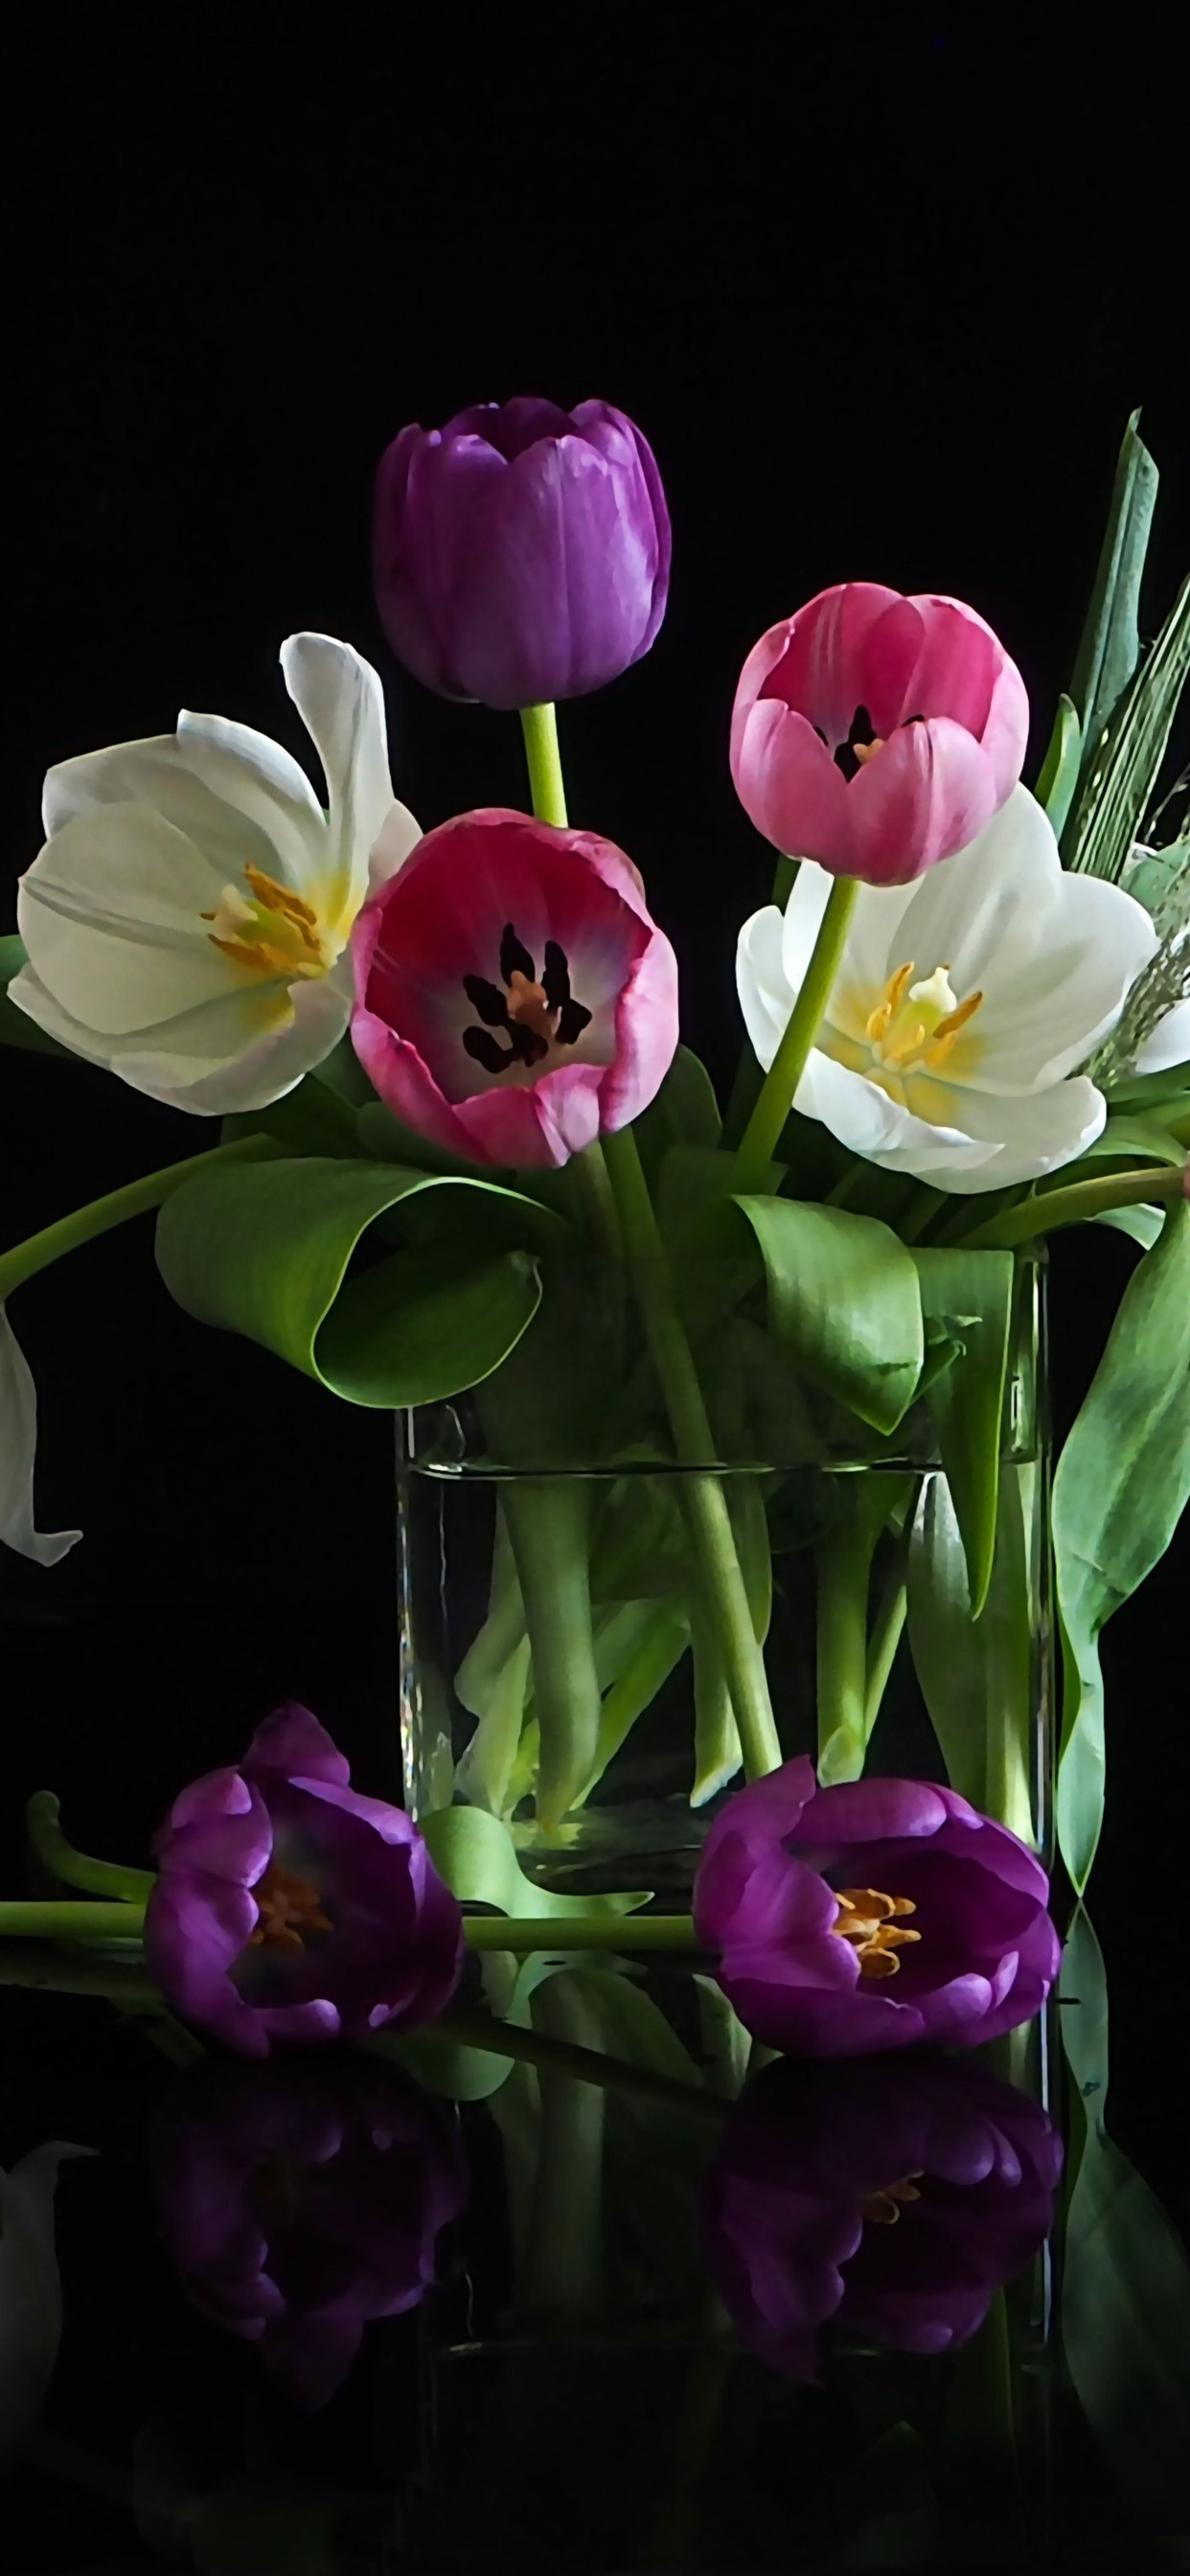 White Pink Tulip Flowers Black Background 1242x2688 Iphone 11 Pro Xs Max Wallpaper Background Picture Image